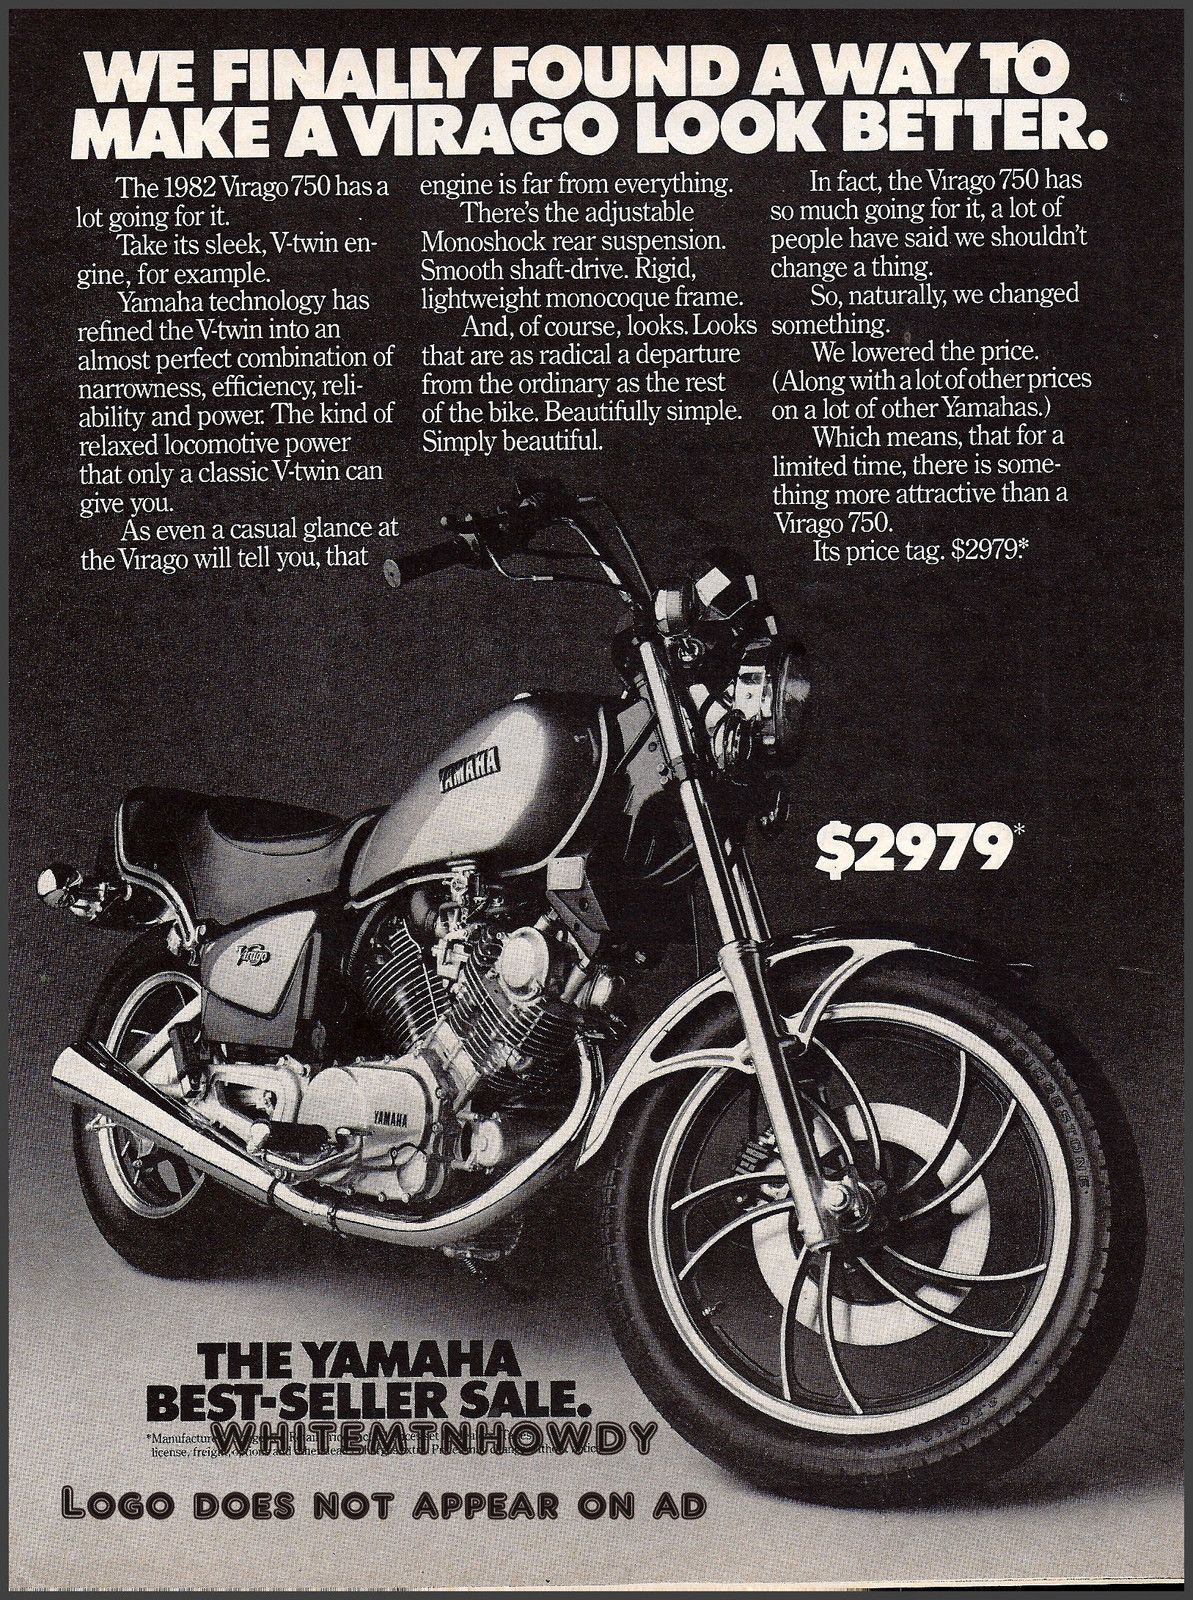 WE FINALLY FOUND A WAY TO MAKE A VIRAGO LOOK BETTER. | 1982 Yamaha Virago  750 #Ad #Vintage #motorcycle #advertisement #japan